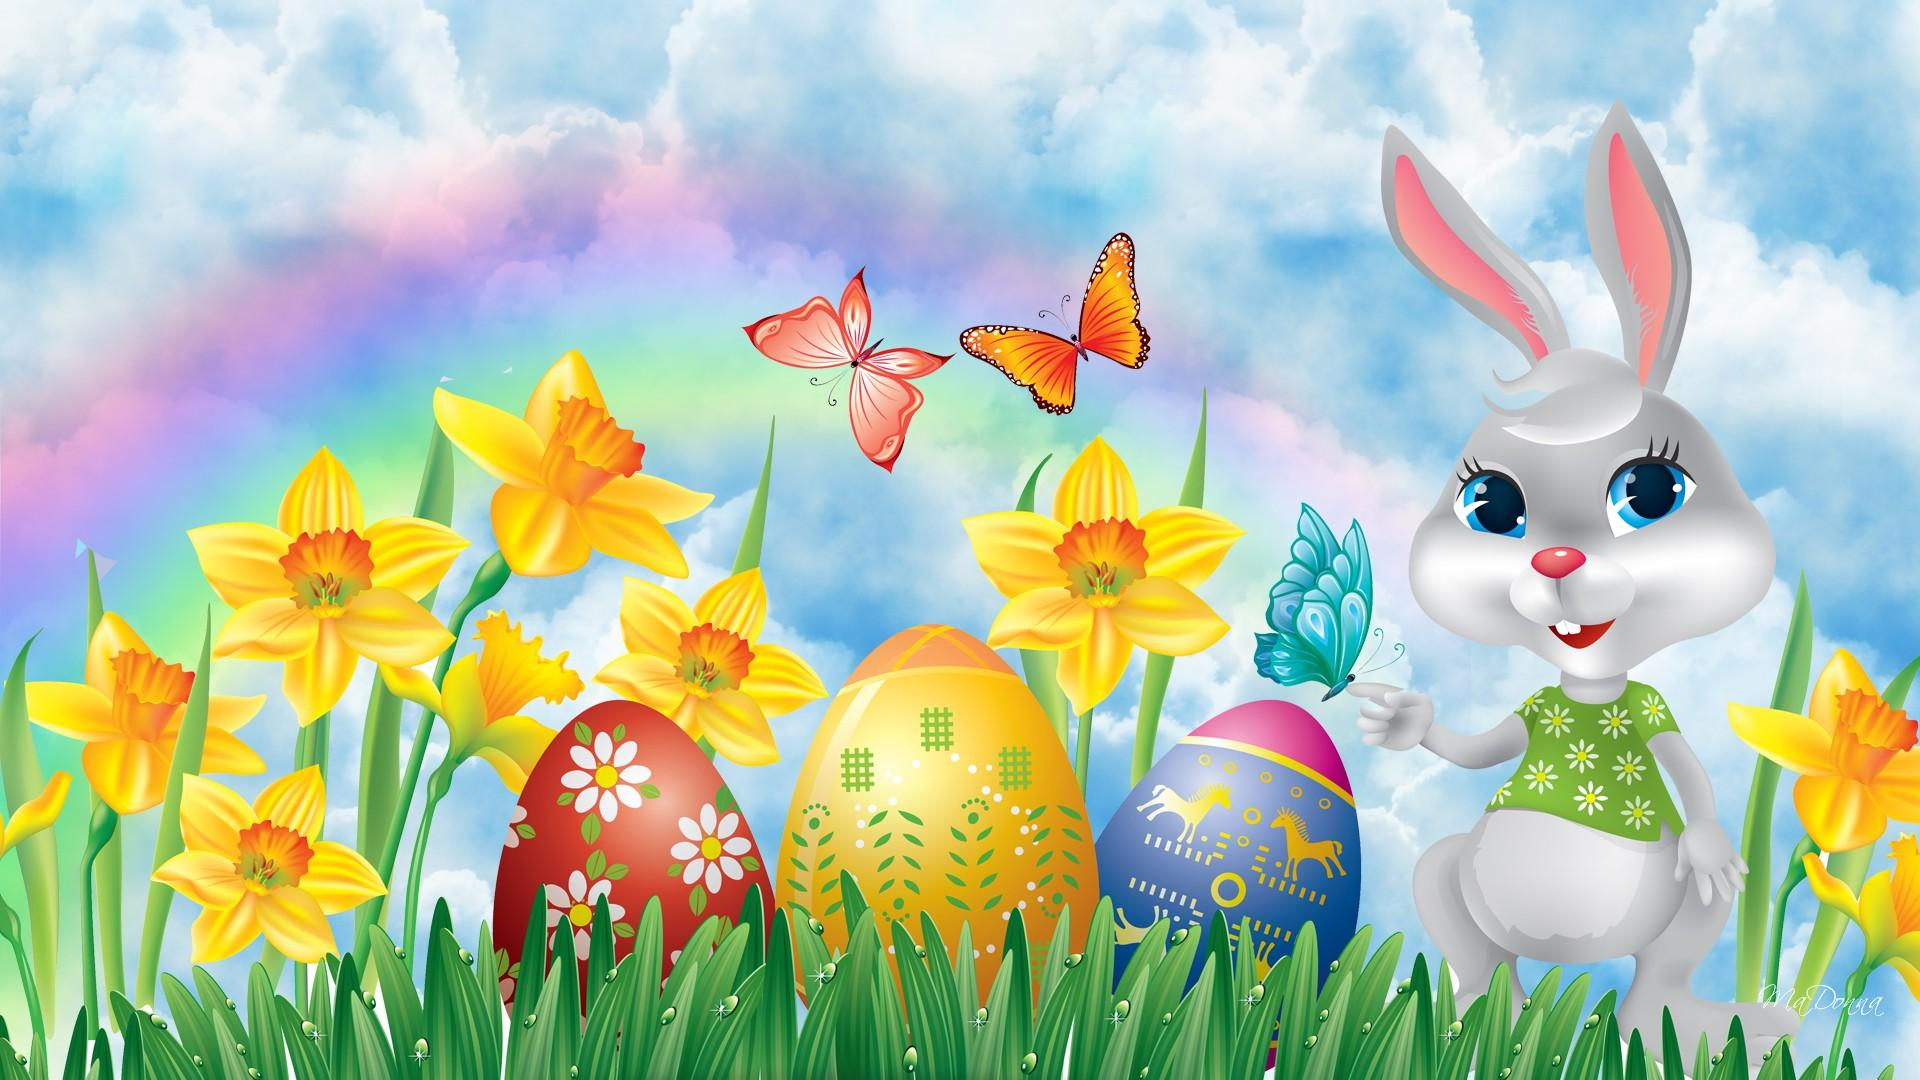 Happy Easter HD   Wallpaper High Definition High Quality Widescreen 1920x1080